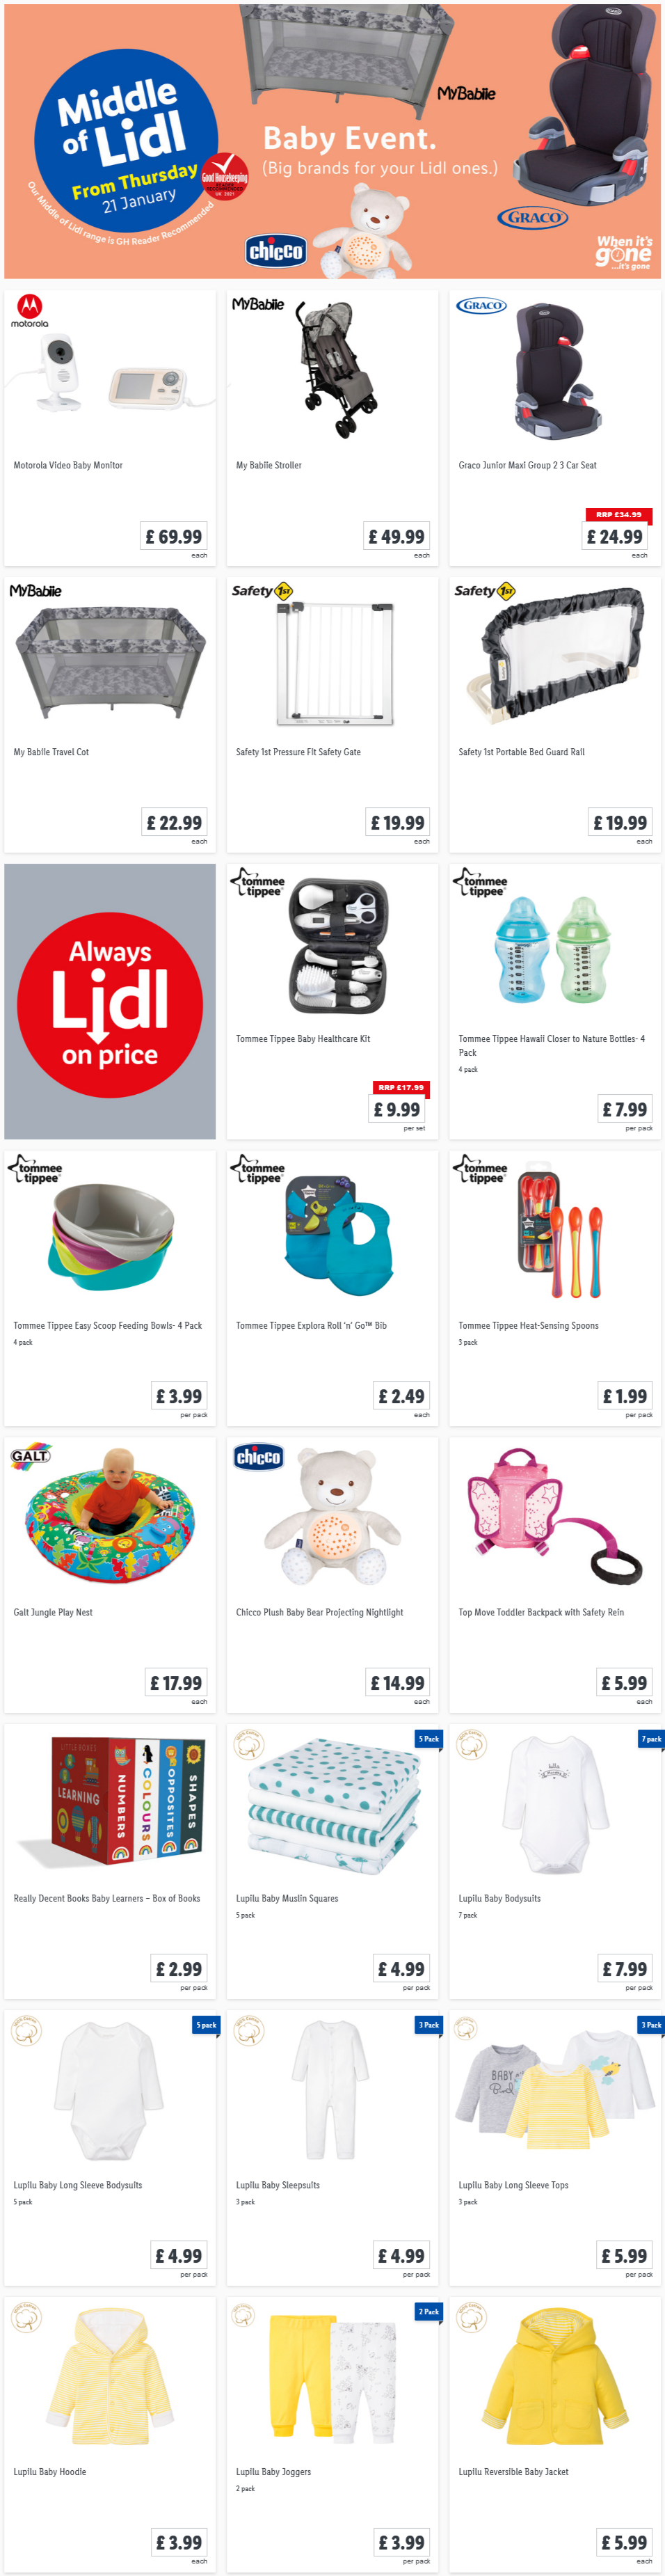 LiDL Baby Care From 21st January 2021 LIDL Offers this Thursday